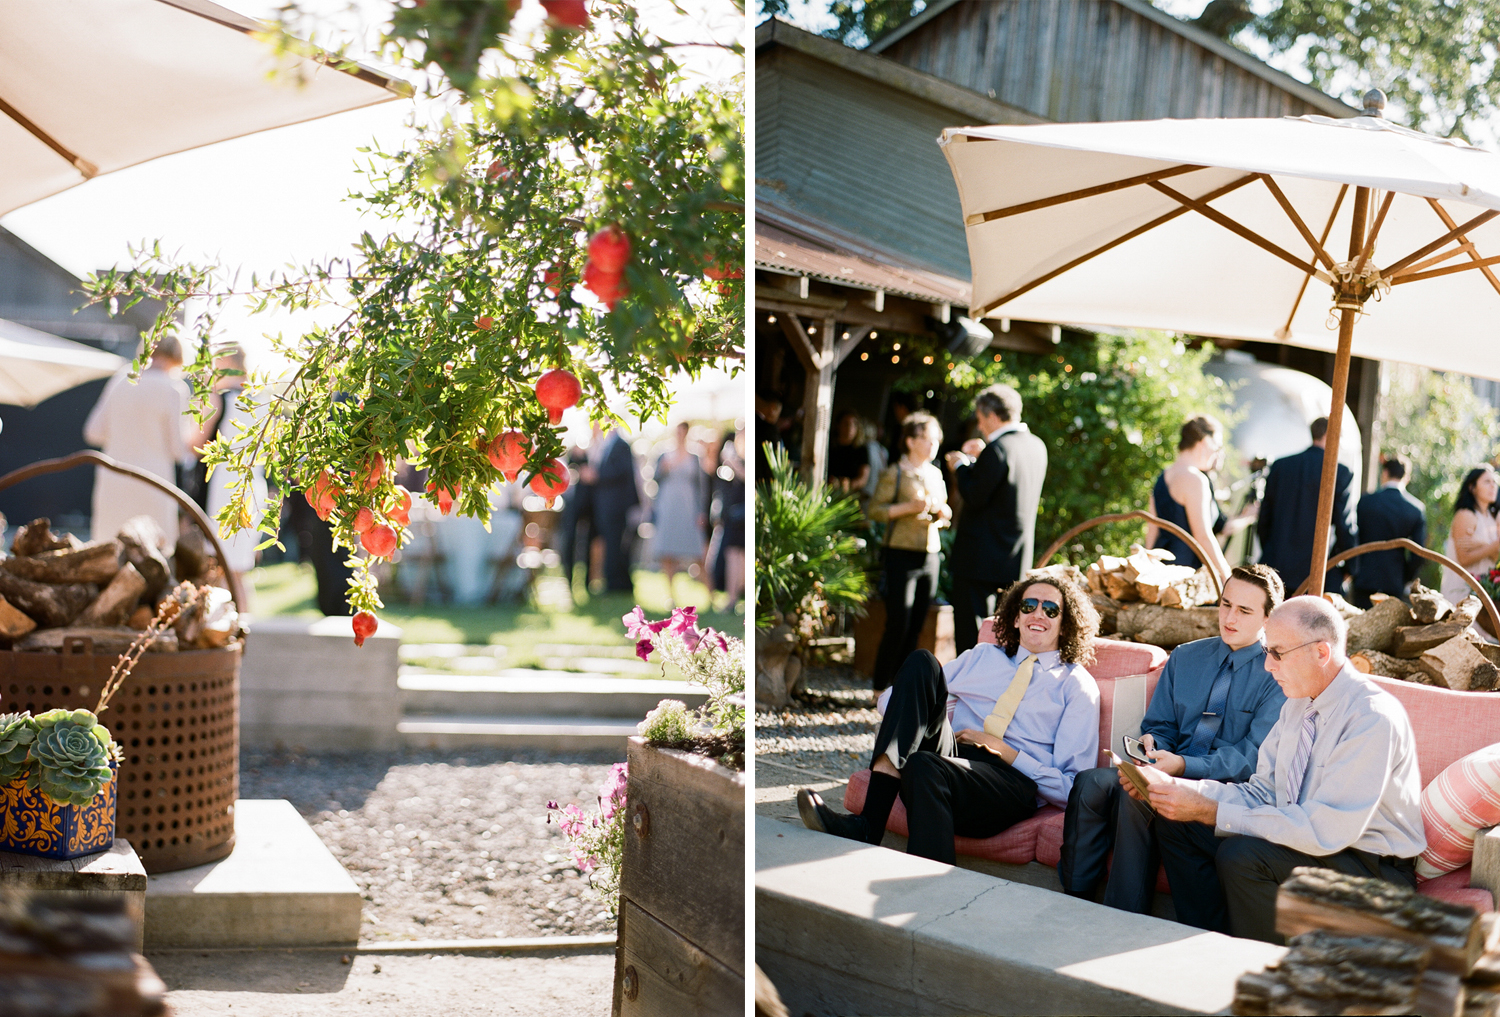 Succulents, pomegranates, and firewood decorate the rustic cocktail space; Sylvie Gil Photography